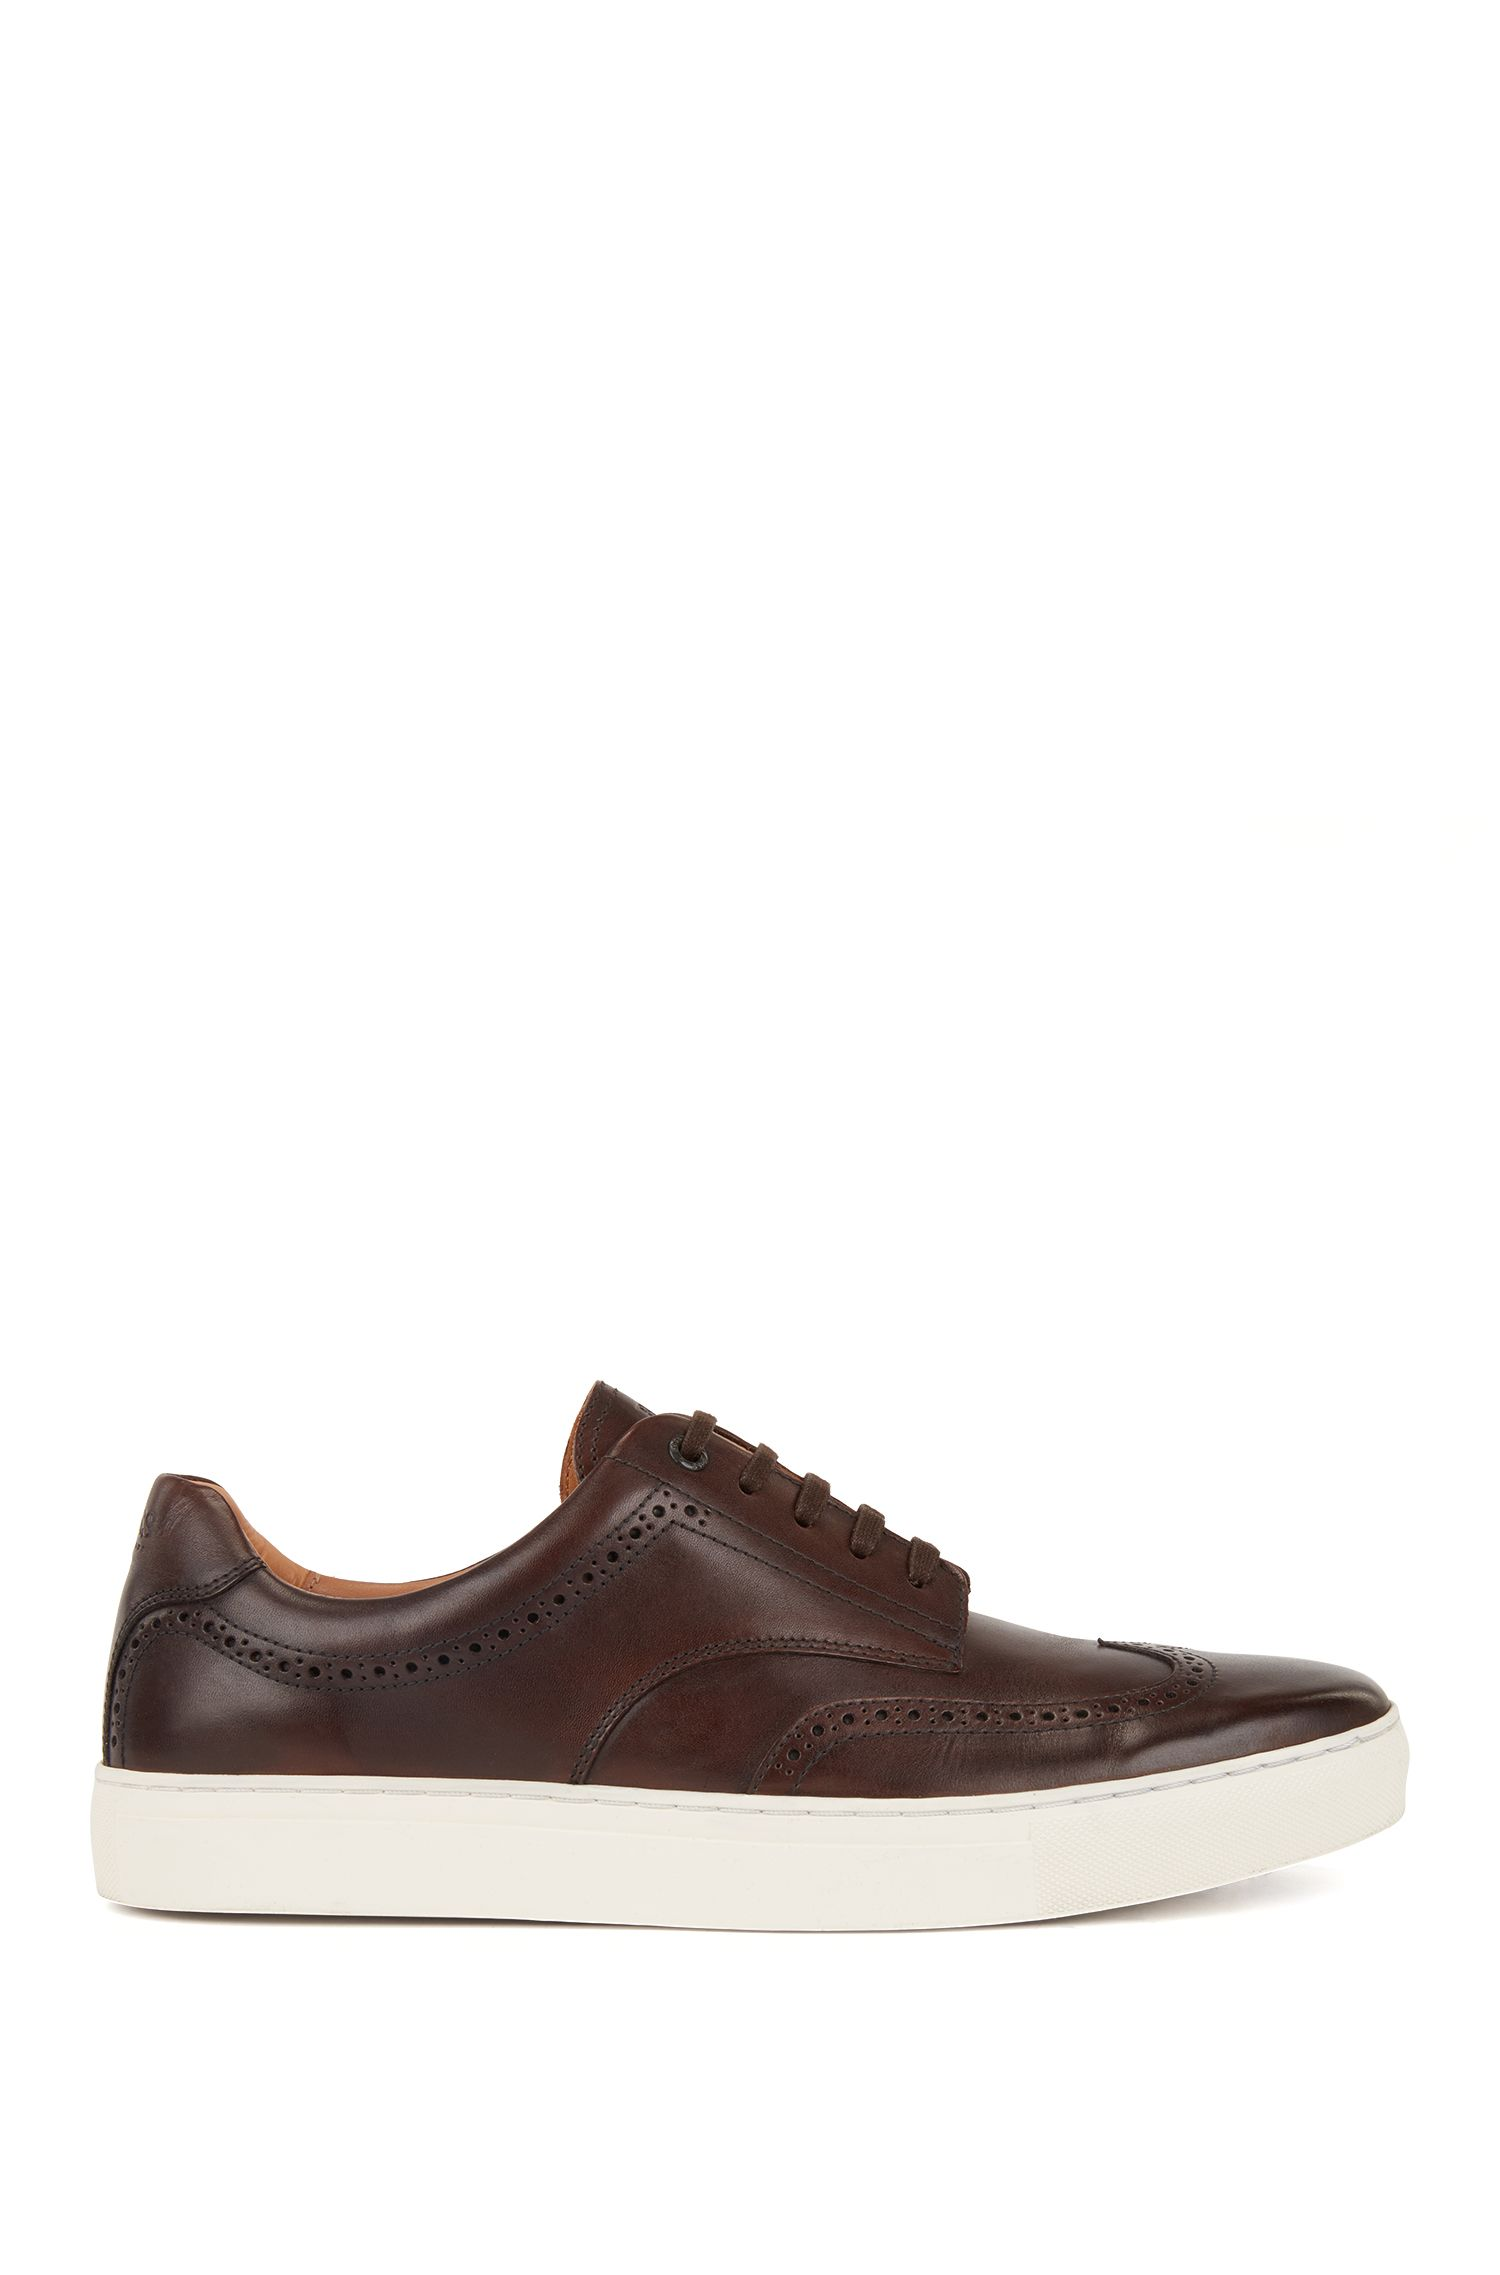 Derby-style sneakers in calf leather with brogue details, Brown